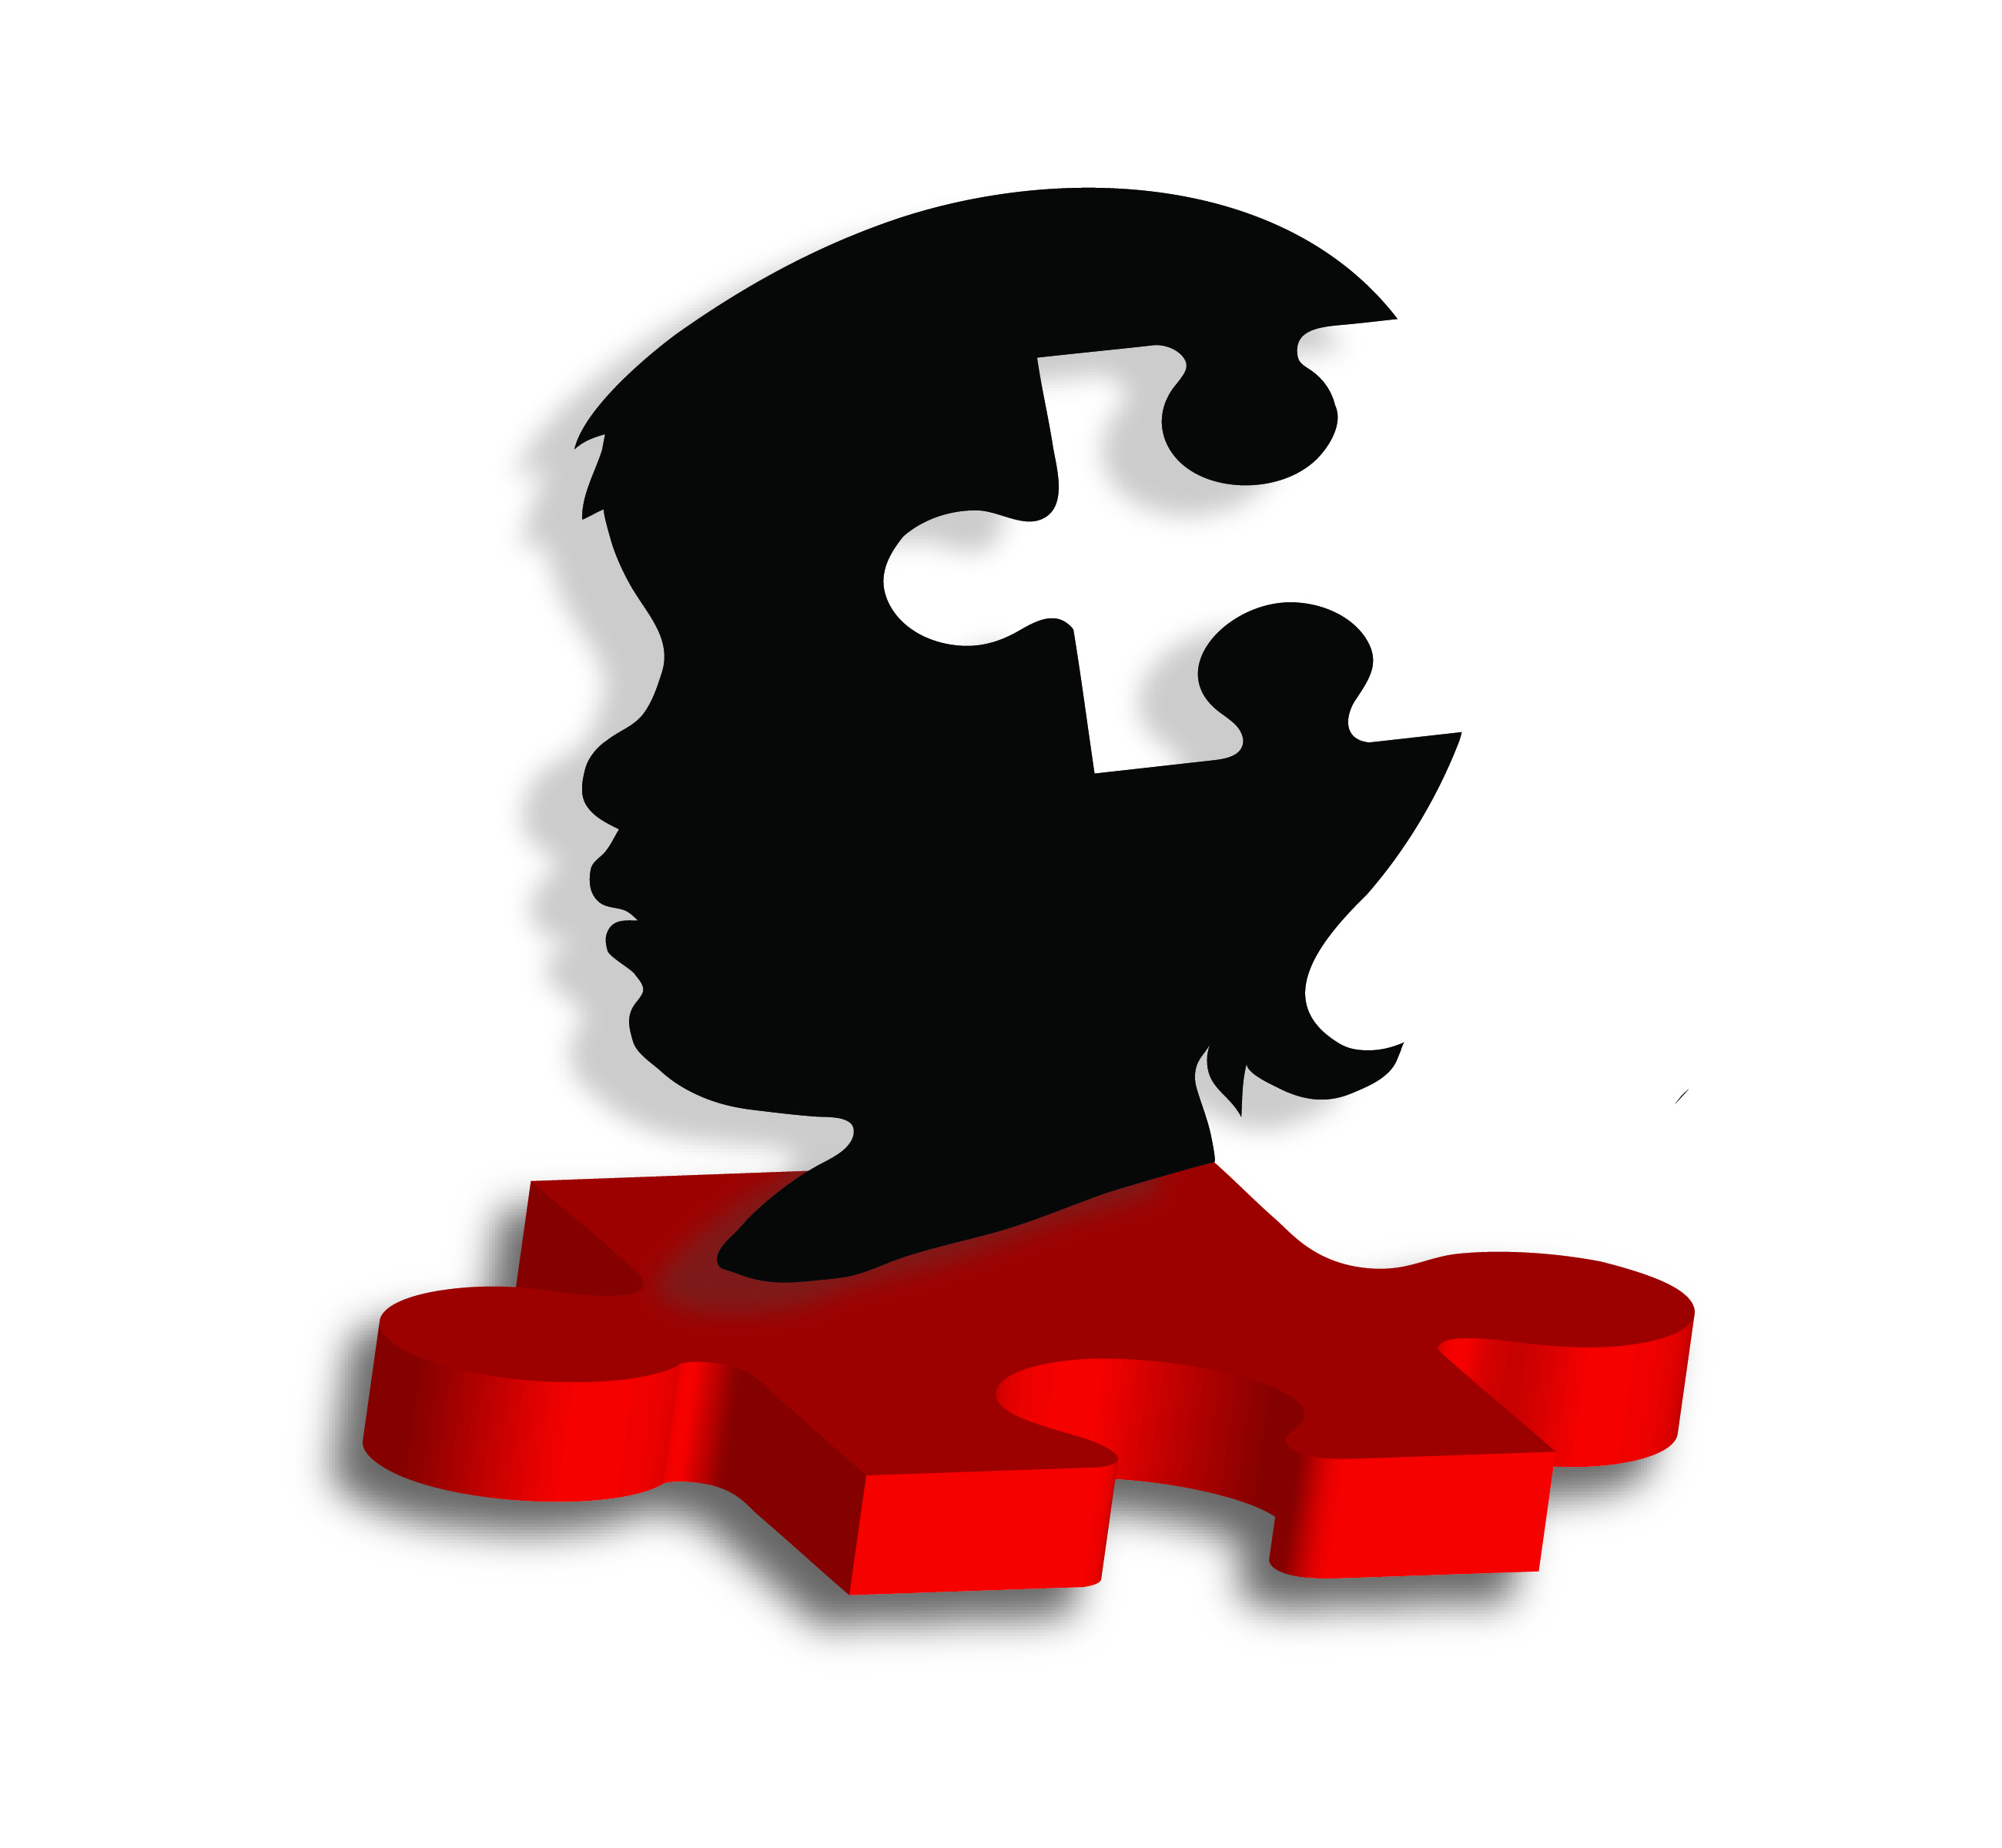 The significance of the autism puzzle piece